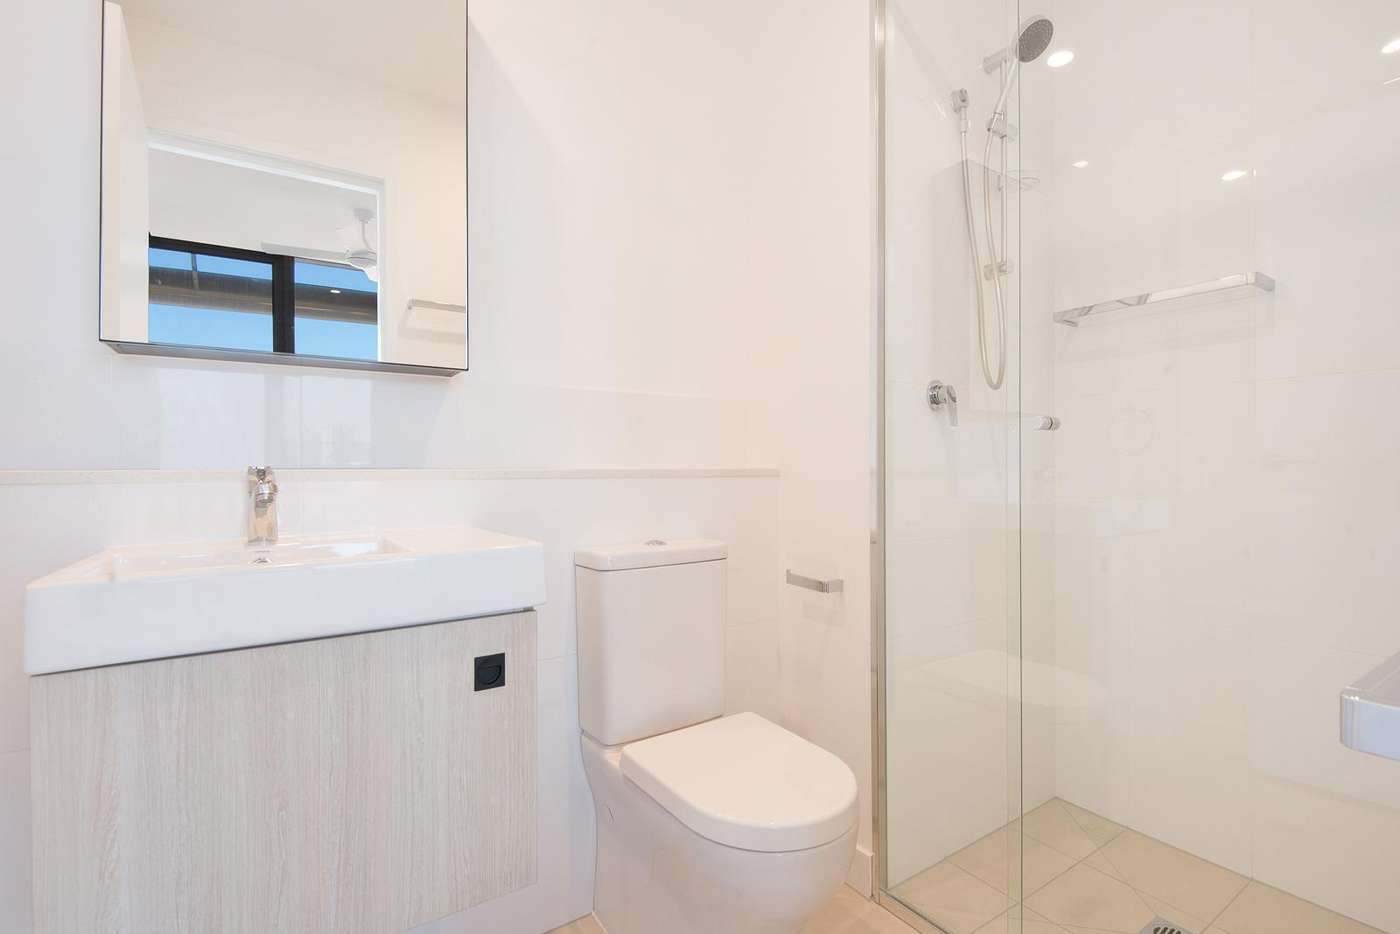 Seventh view of Homely apartment listing, 40901/1033 Ann Street, Newstead QLD 4006